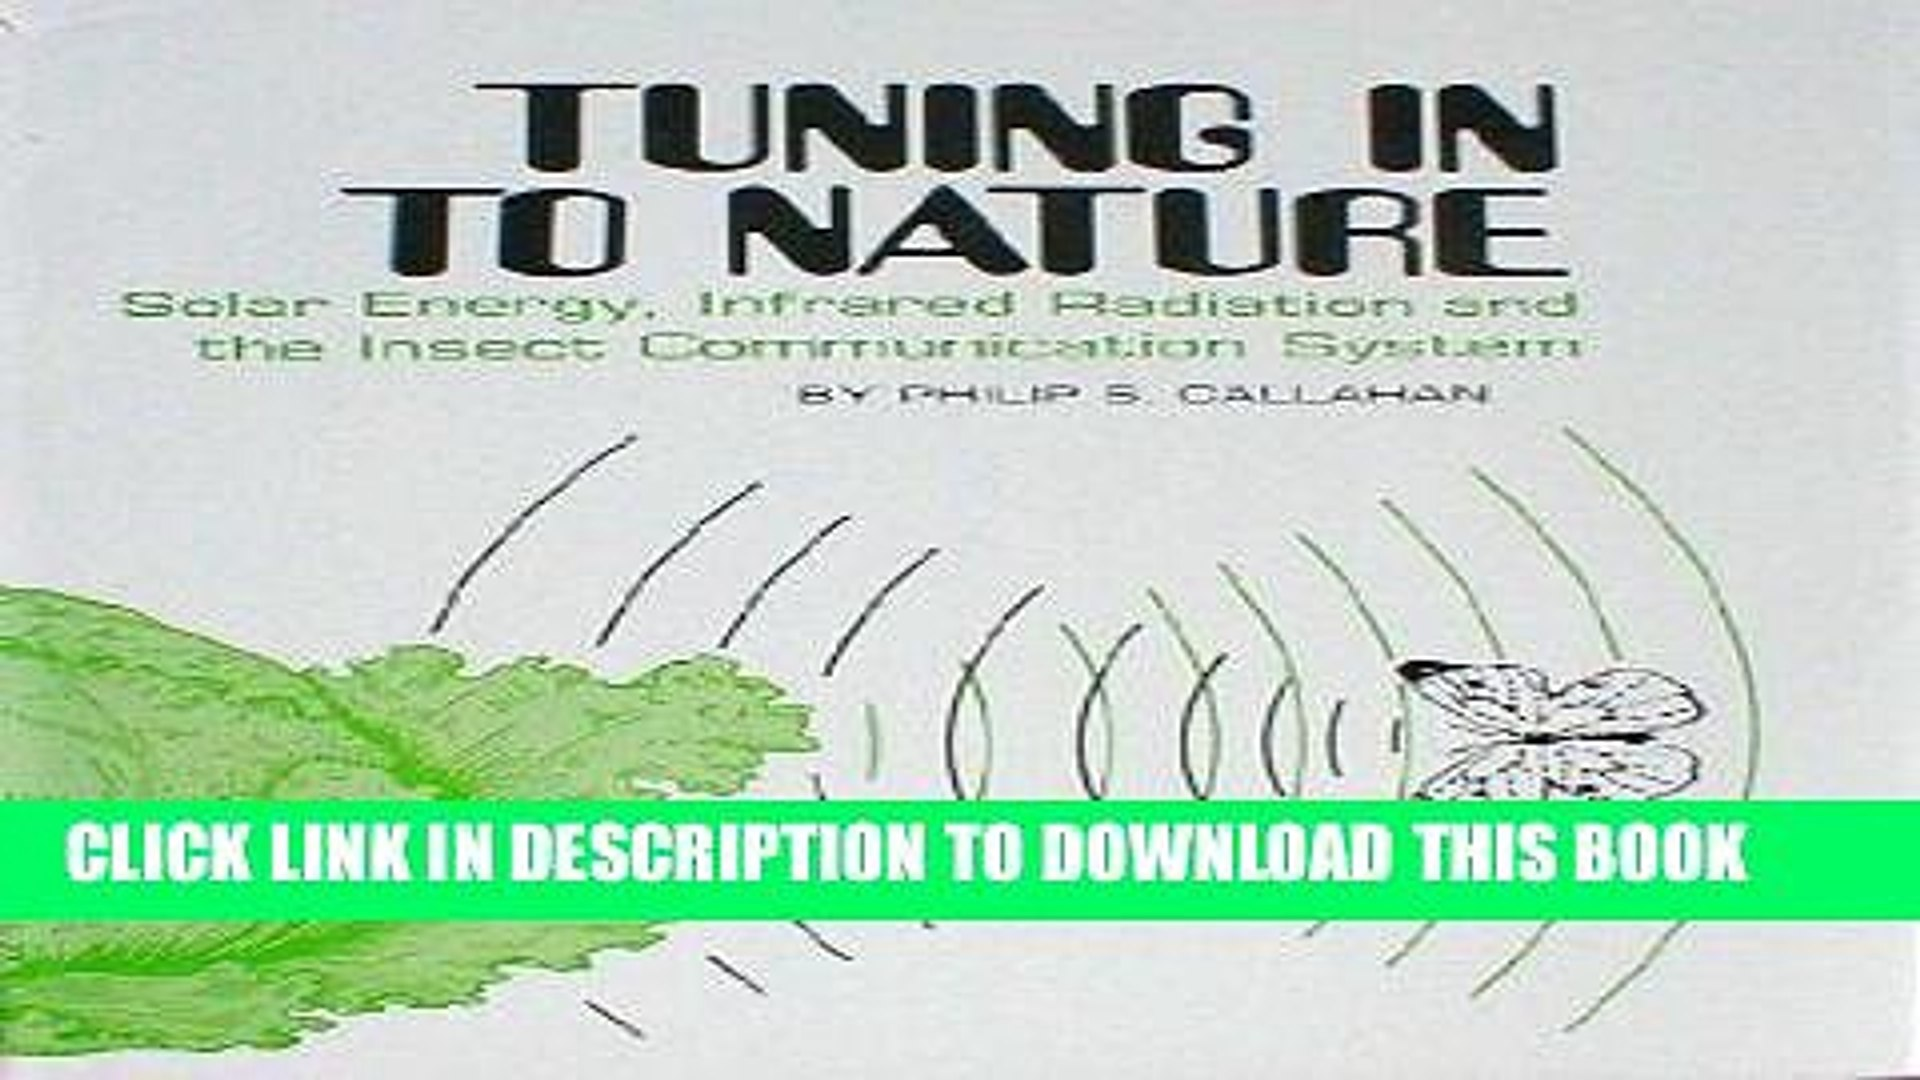 Tuning in to Nature Infrared Radiation And the Insect Communication System